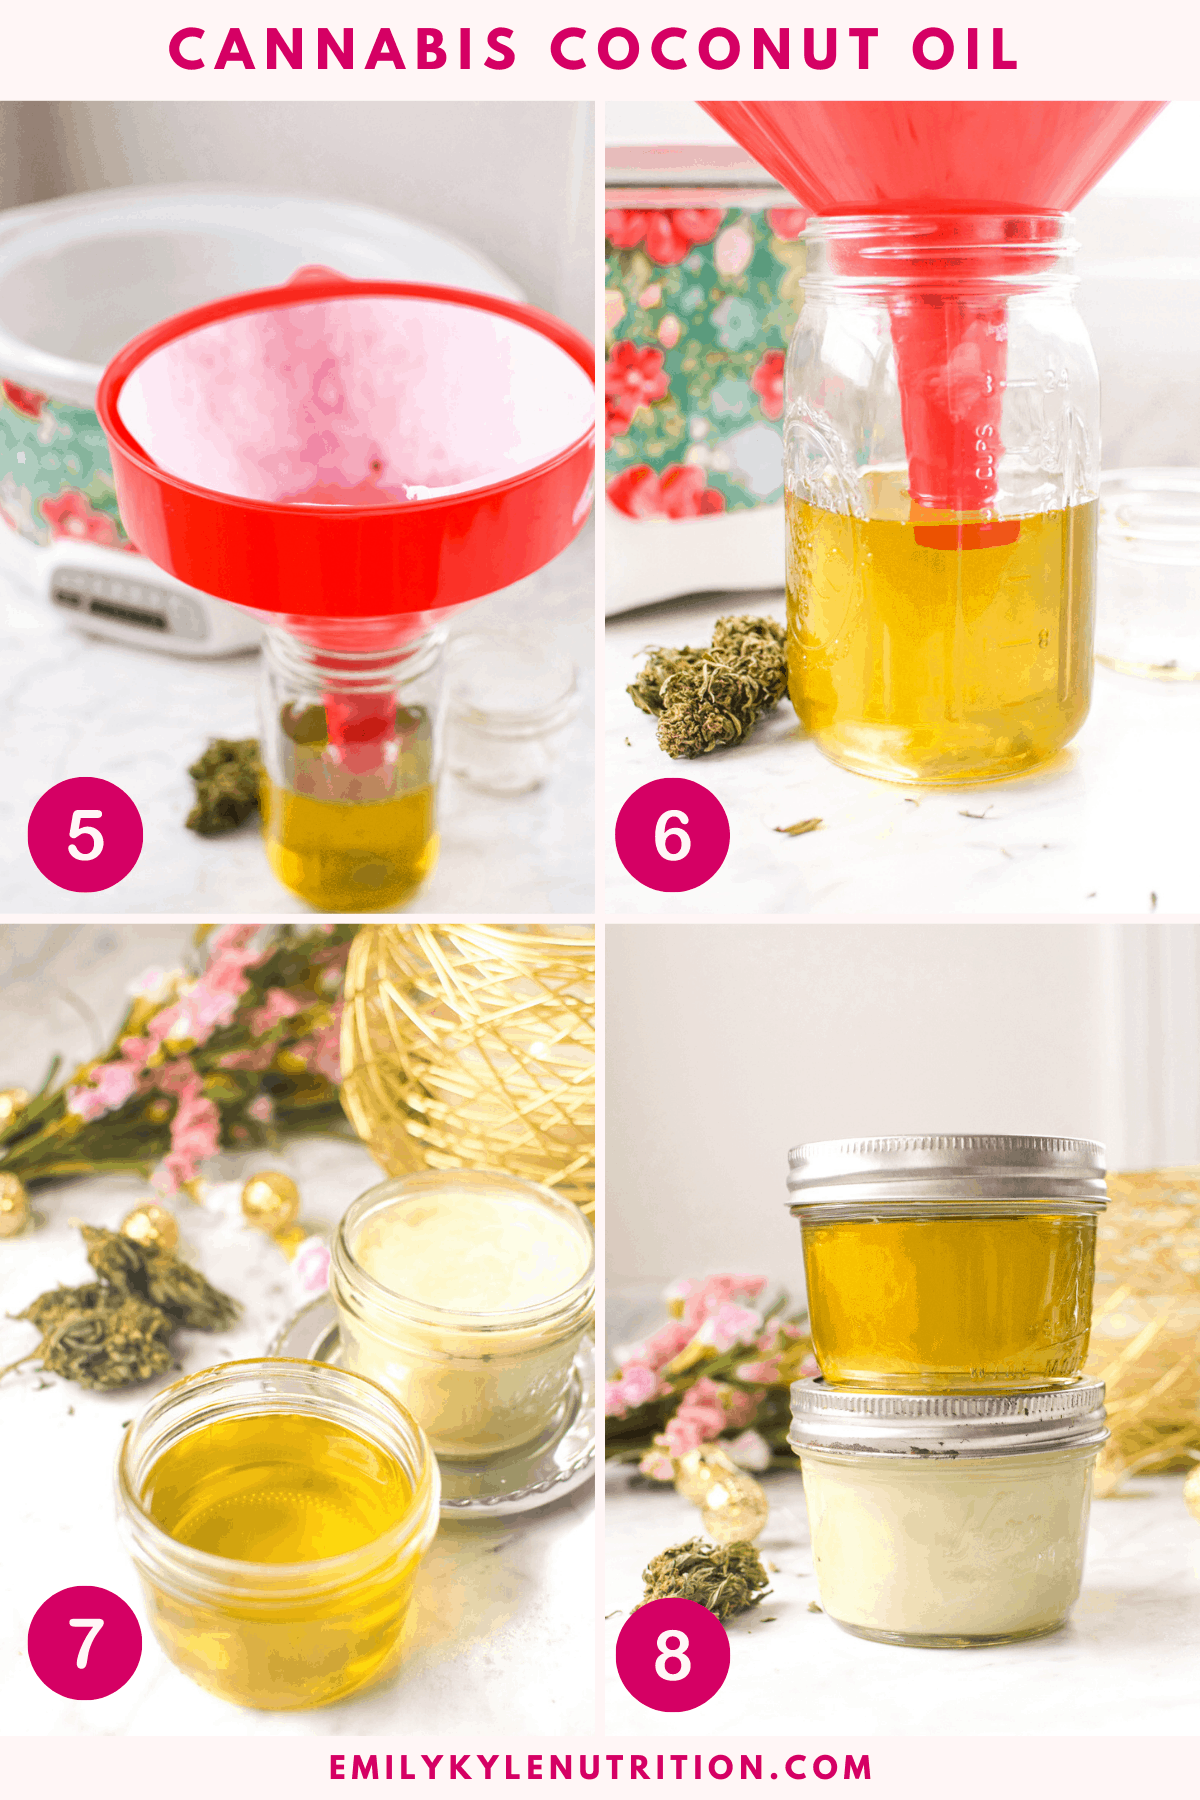 A 4 step collage showing a jar of oil for straining, the strained oil with a funnel in it, a final product shot of liquid coconut oil and hardened coconut oil